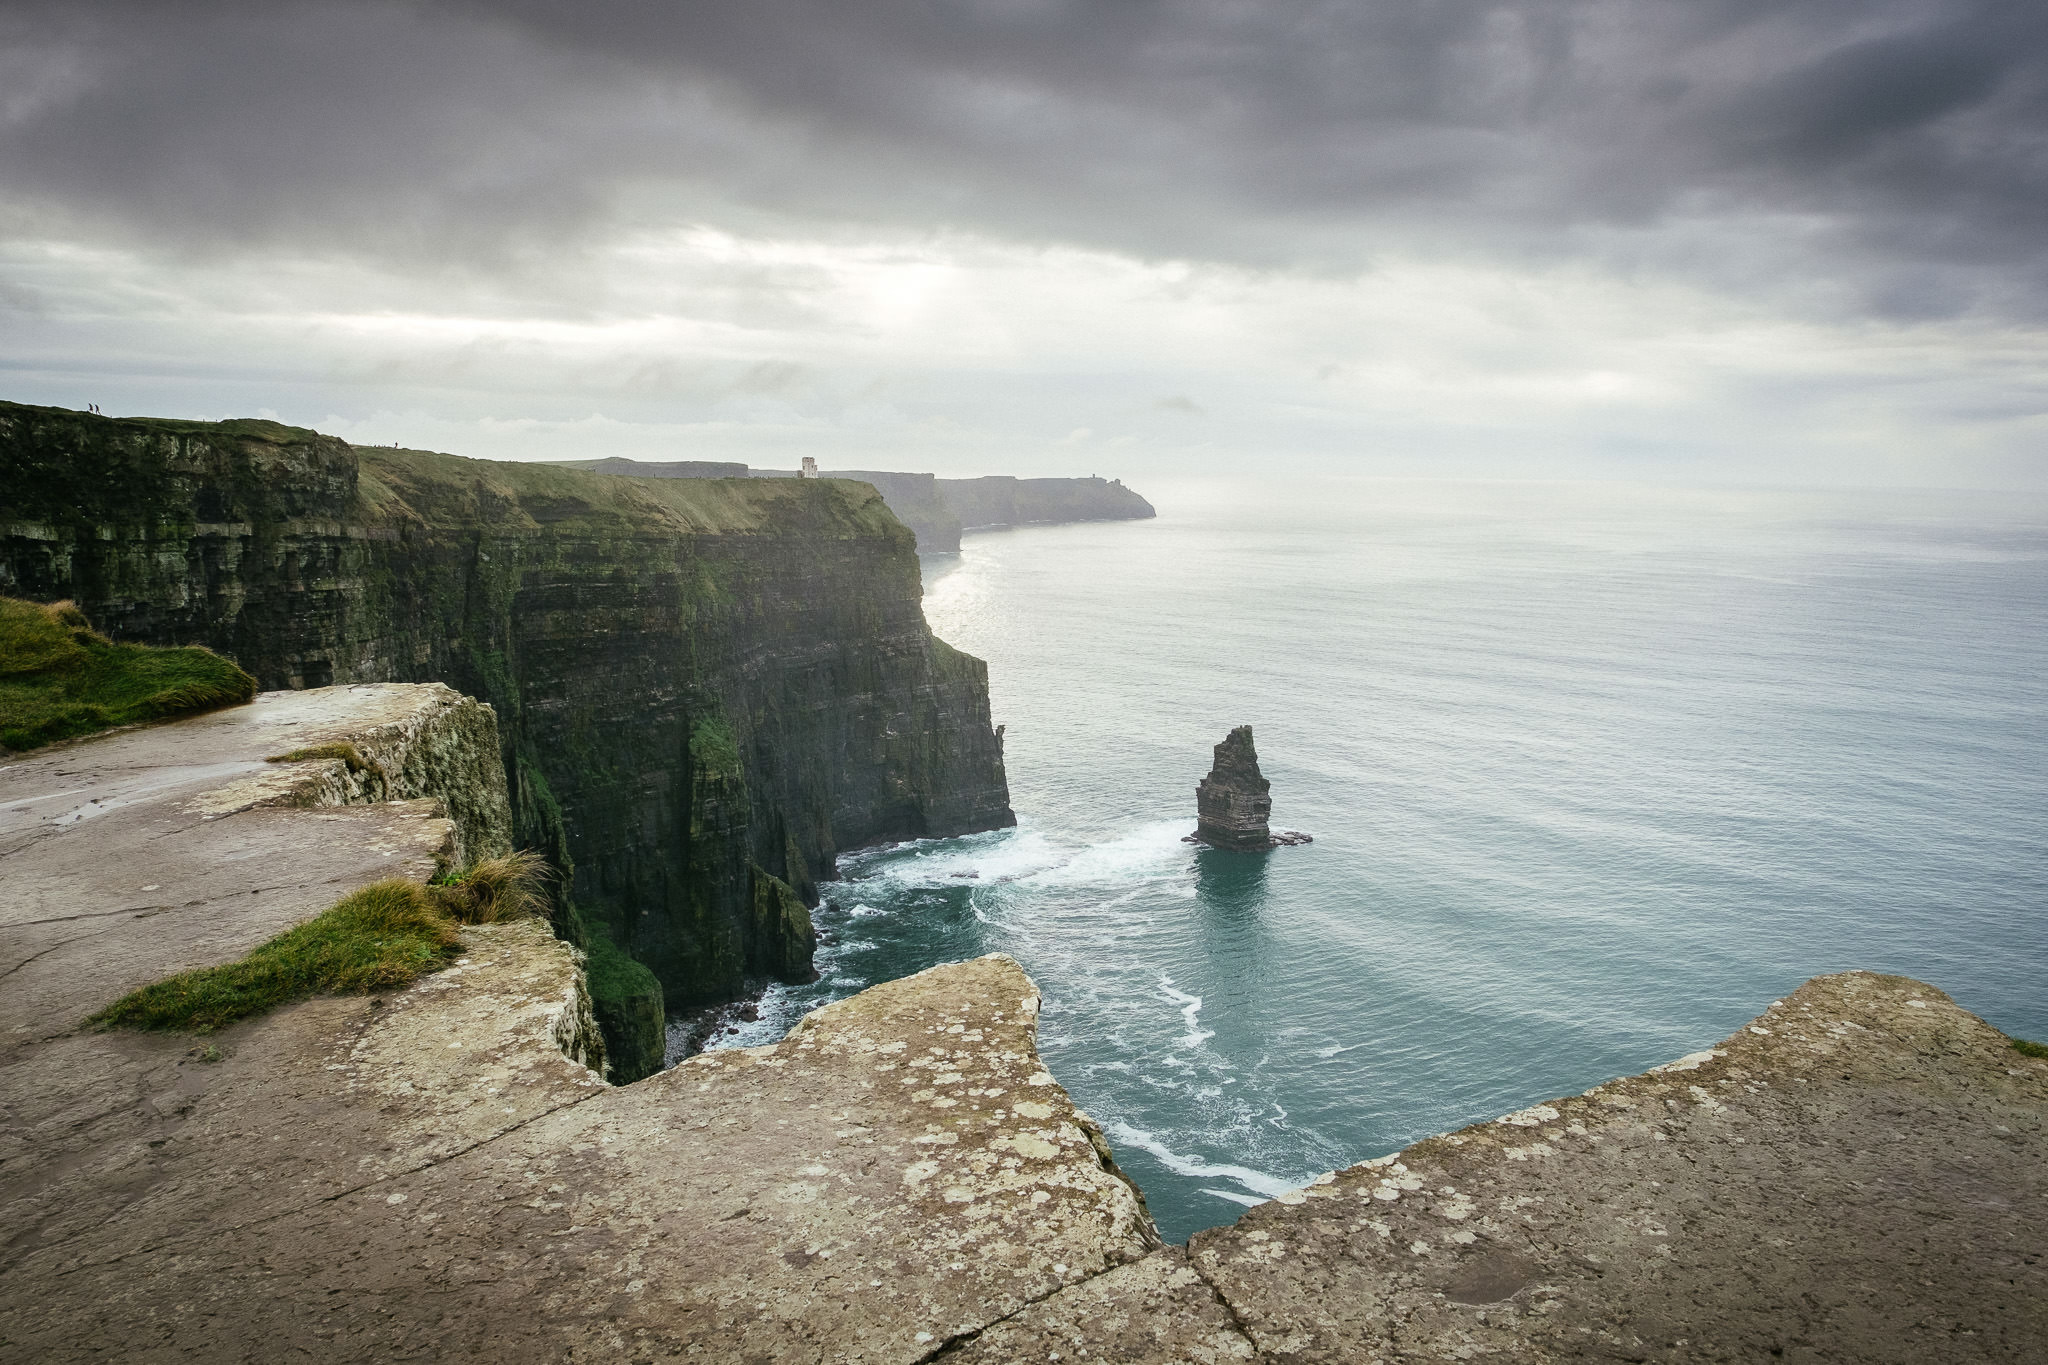 sea stack at the Cliffs of Moher Ireland